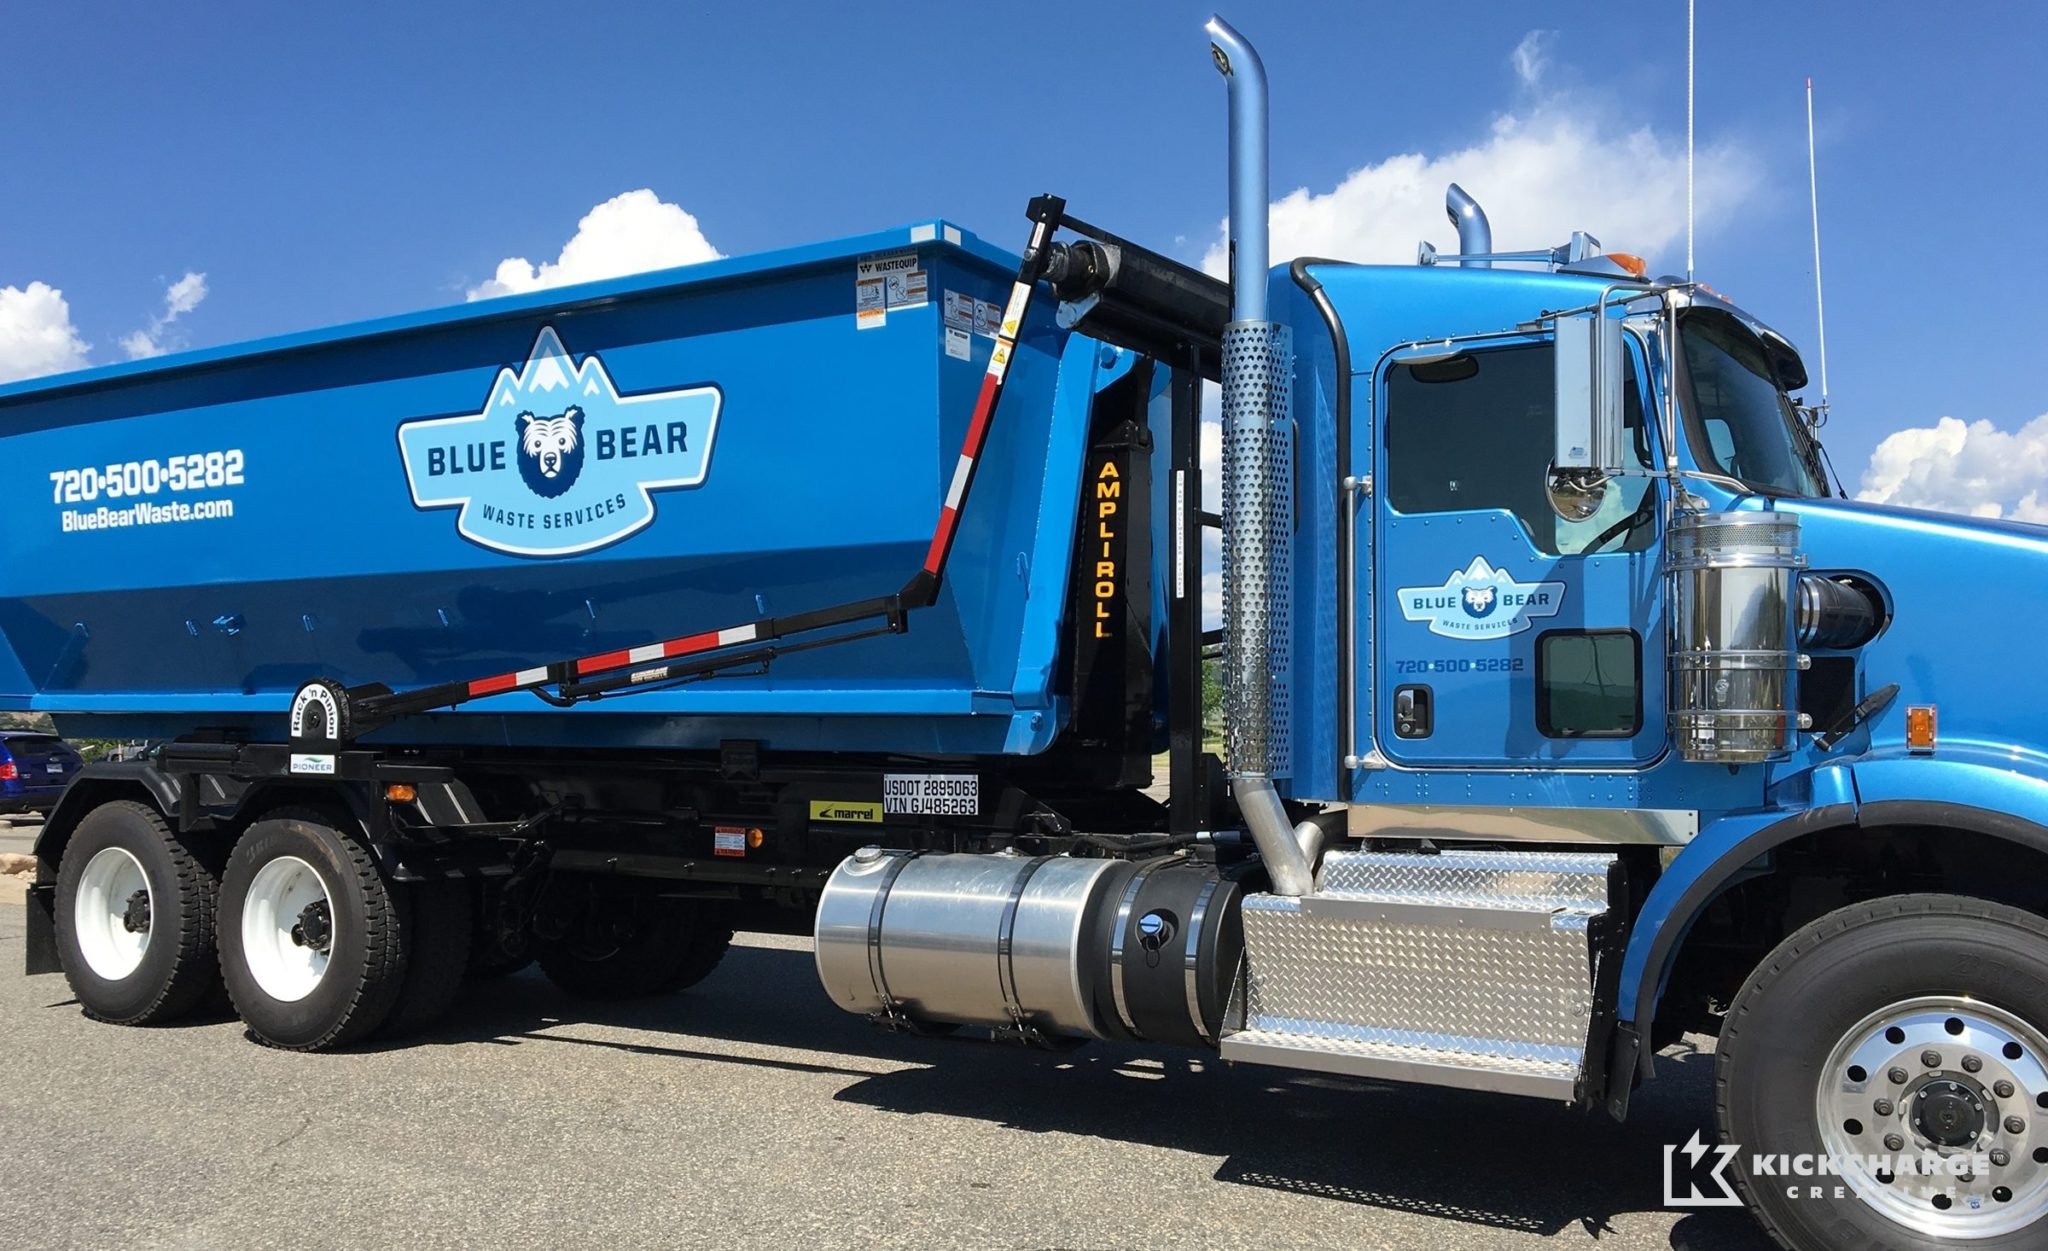 Truck wrap design for a Denver, CO-based waste management company.